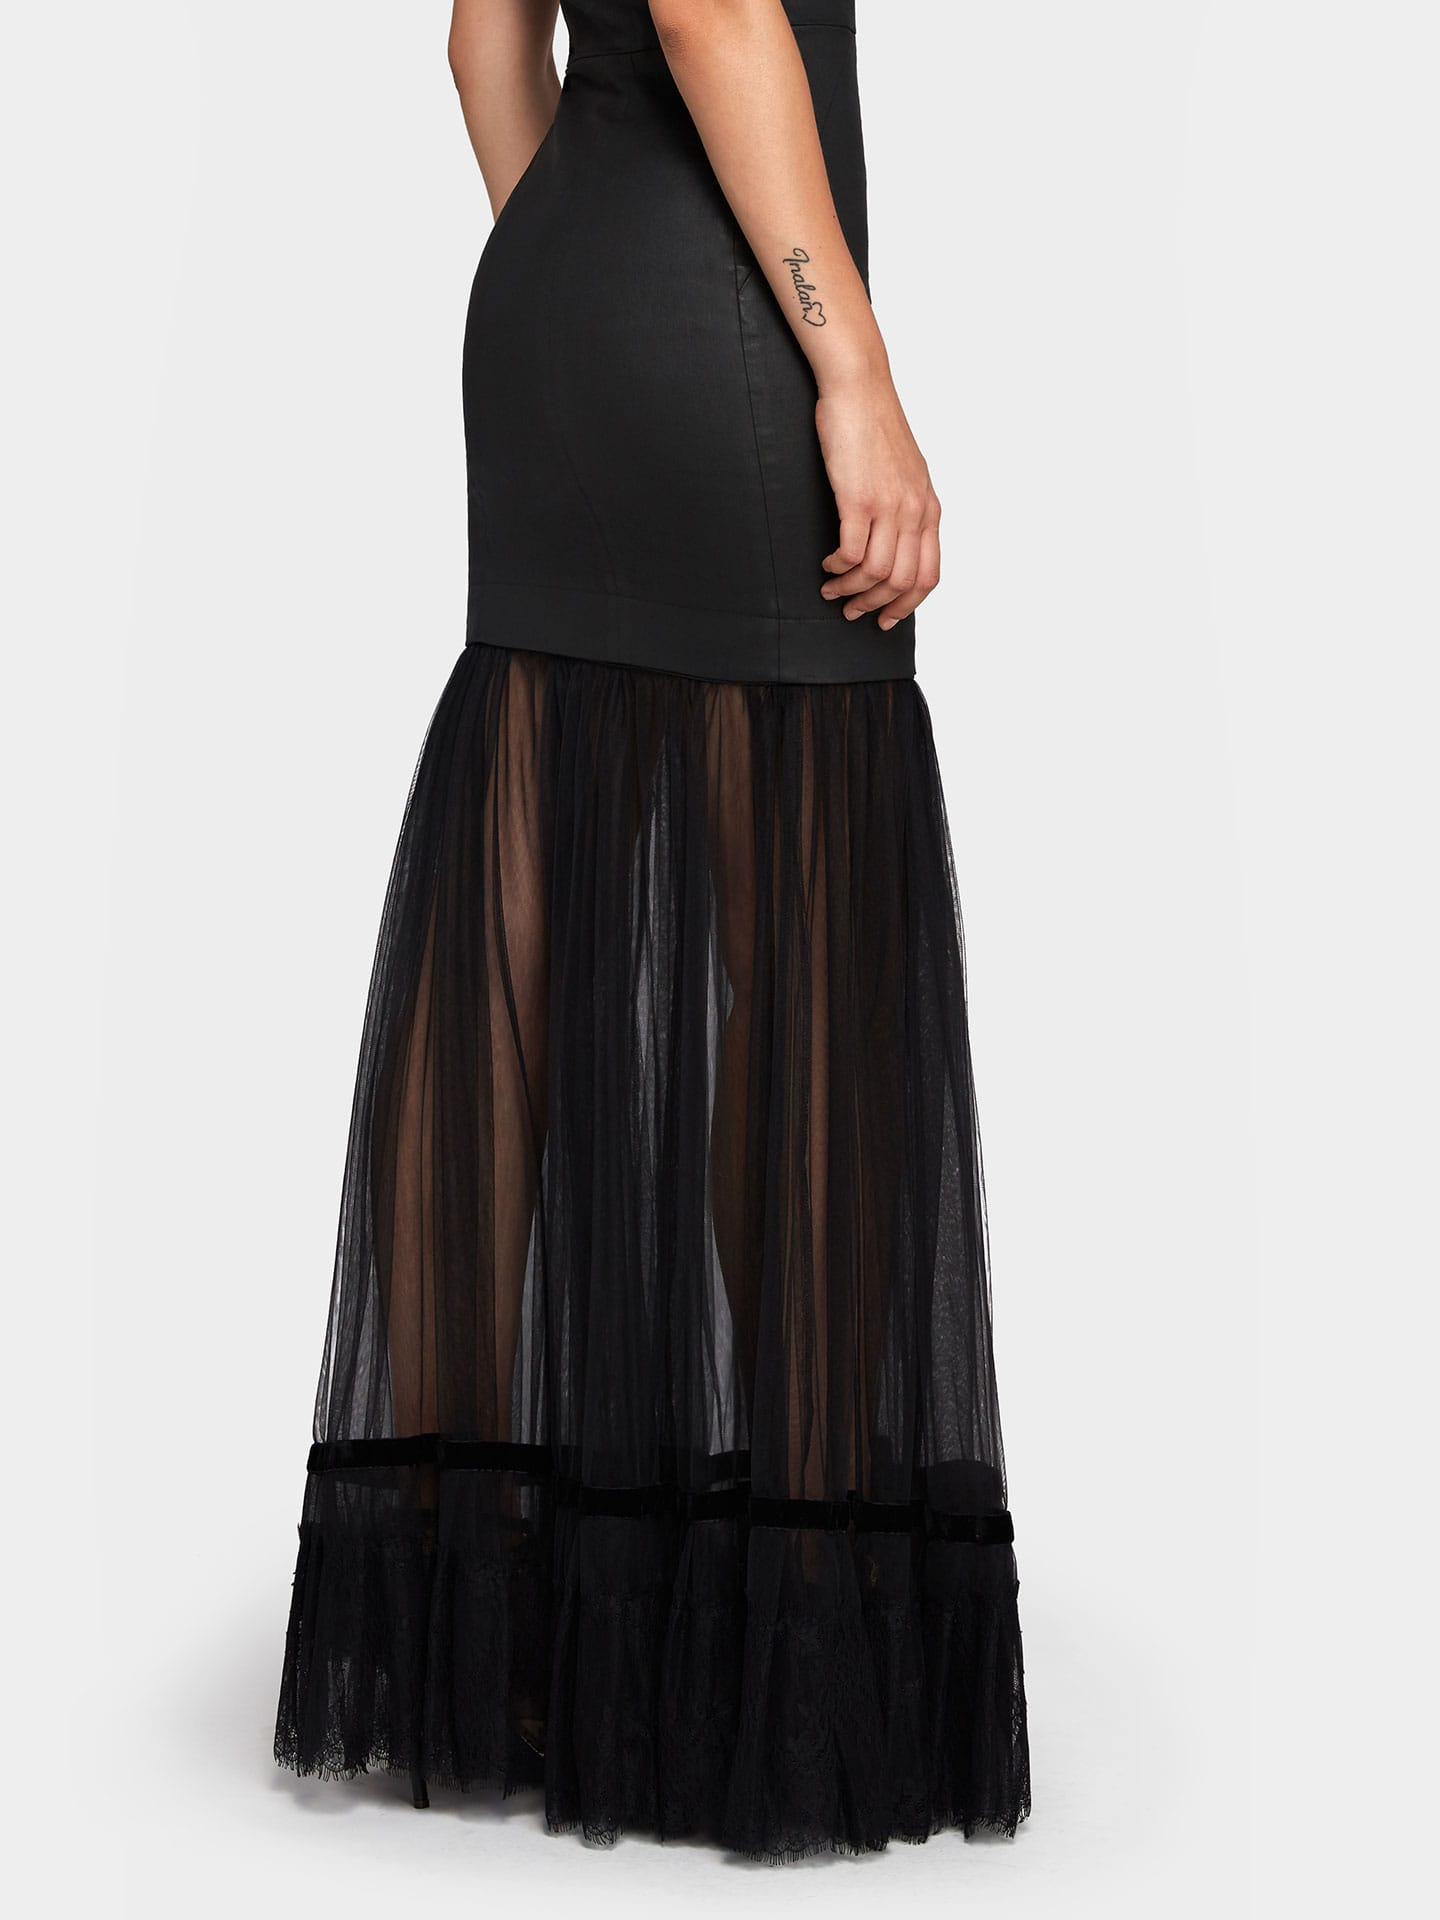 Labbys Cocktail Skirt